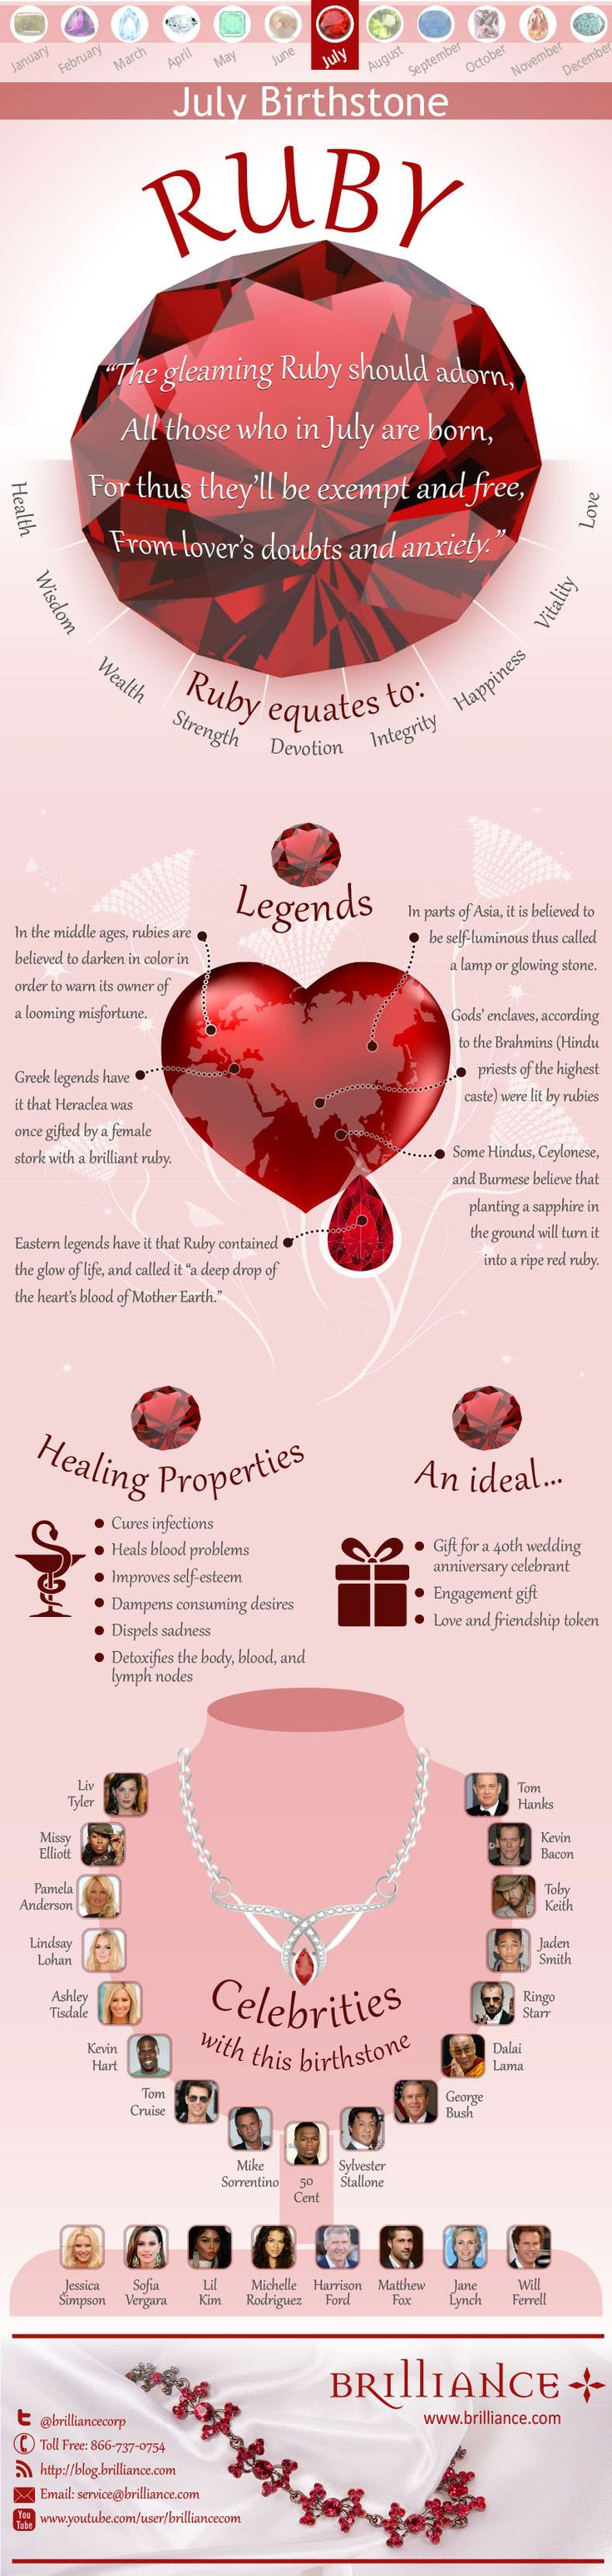 Ruby, The July Birthstone: Brilliance lets the July birthstone shine with fiery meaning with a new infographic on rubies.   http://blog.brilliance.com/2013/ruby-the-july-birthstone#sthash.f4Y6Zf3f.dpuf